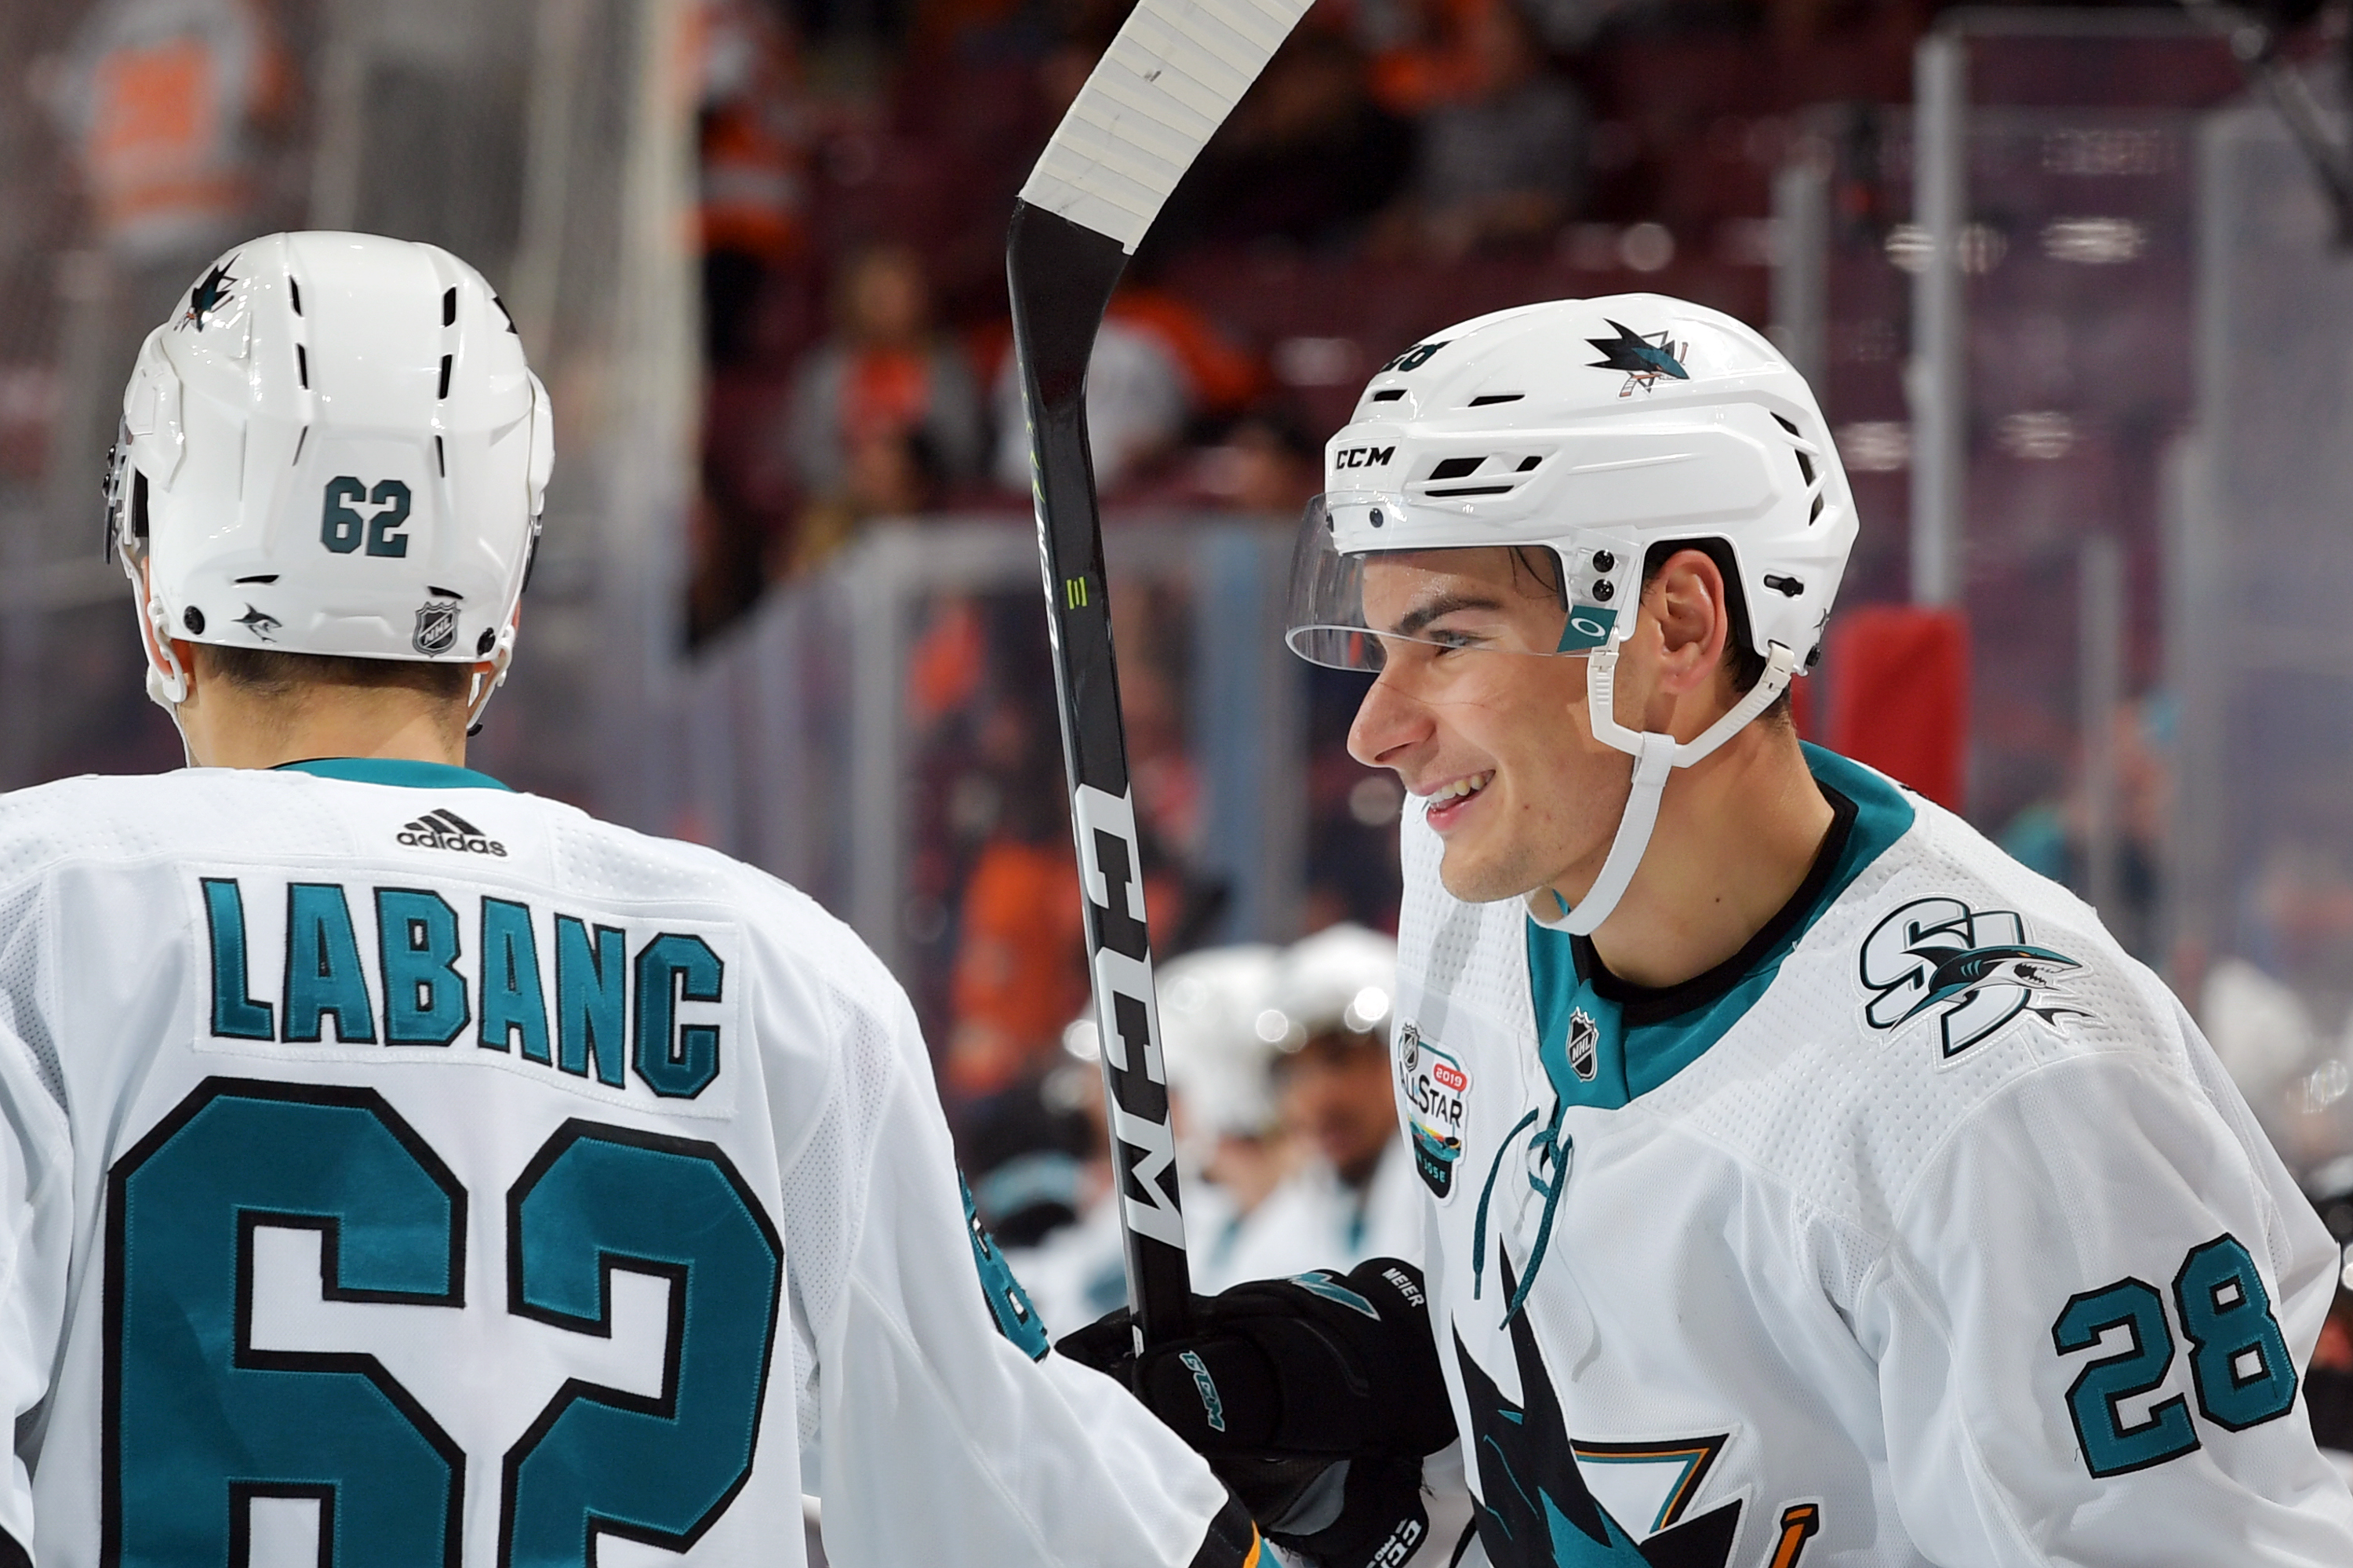 PHILADELPHIA, PA - OCTOBER 09: Kevin Labanc and Timo Meier of the San Jose Sharks celebrate a third period goal against the Philadelphia Flyers at the Wells Fargo Center on October 9, 2018 in Philadelphia, Pennsylvania. The Sharks won 8-2.